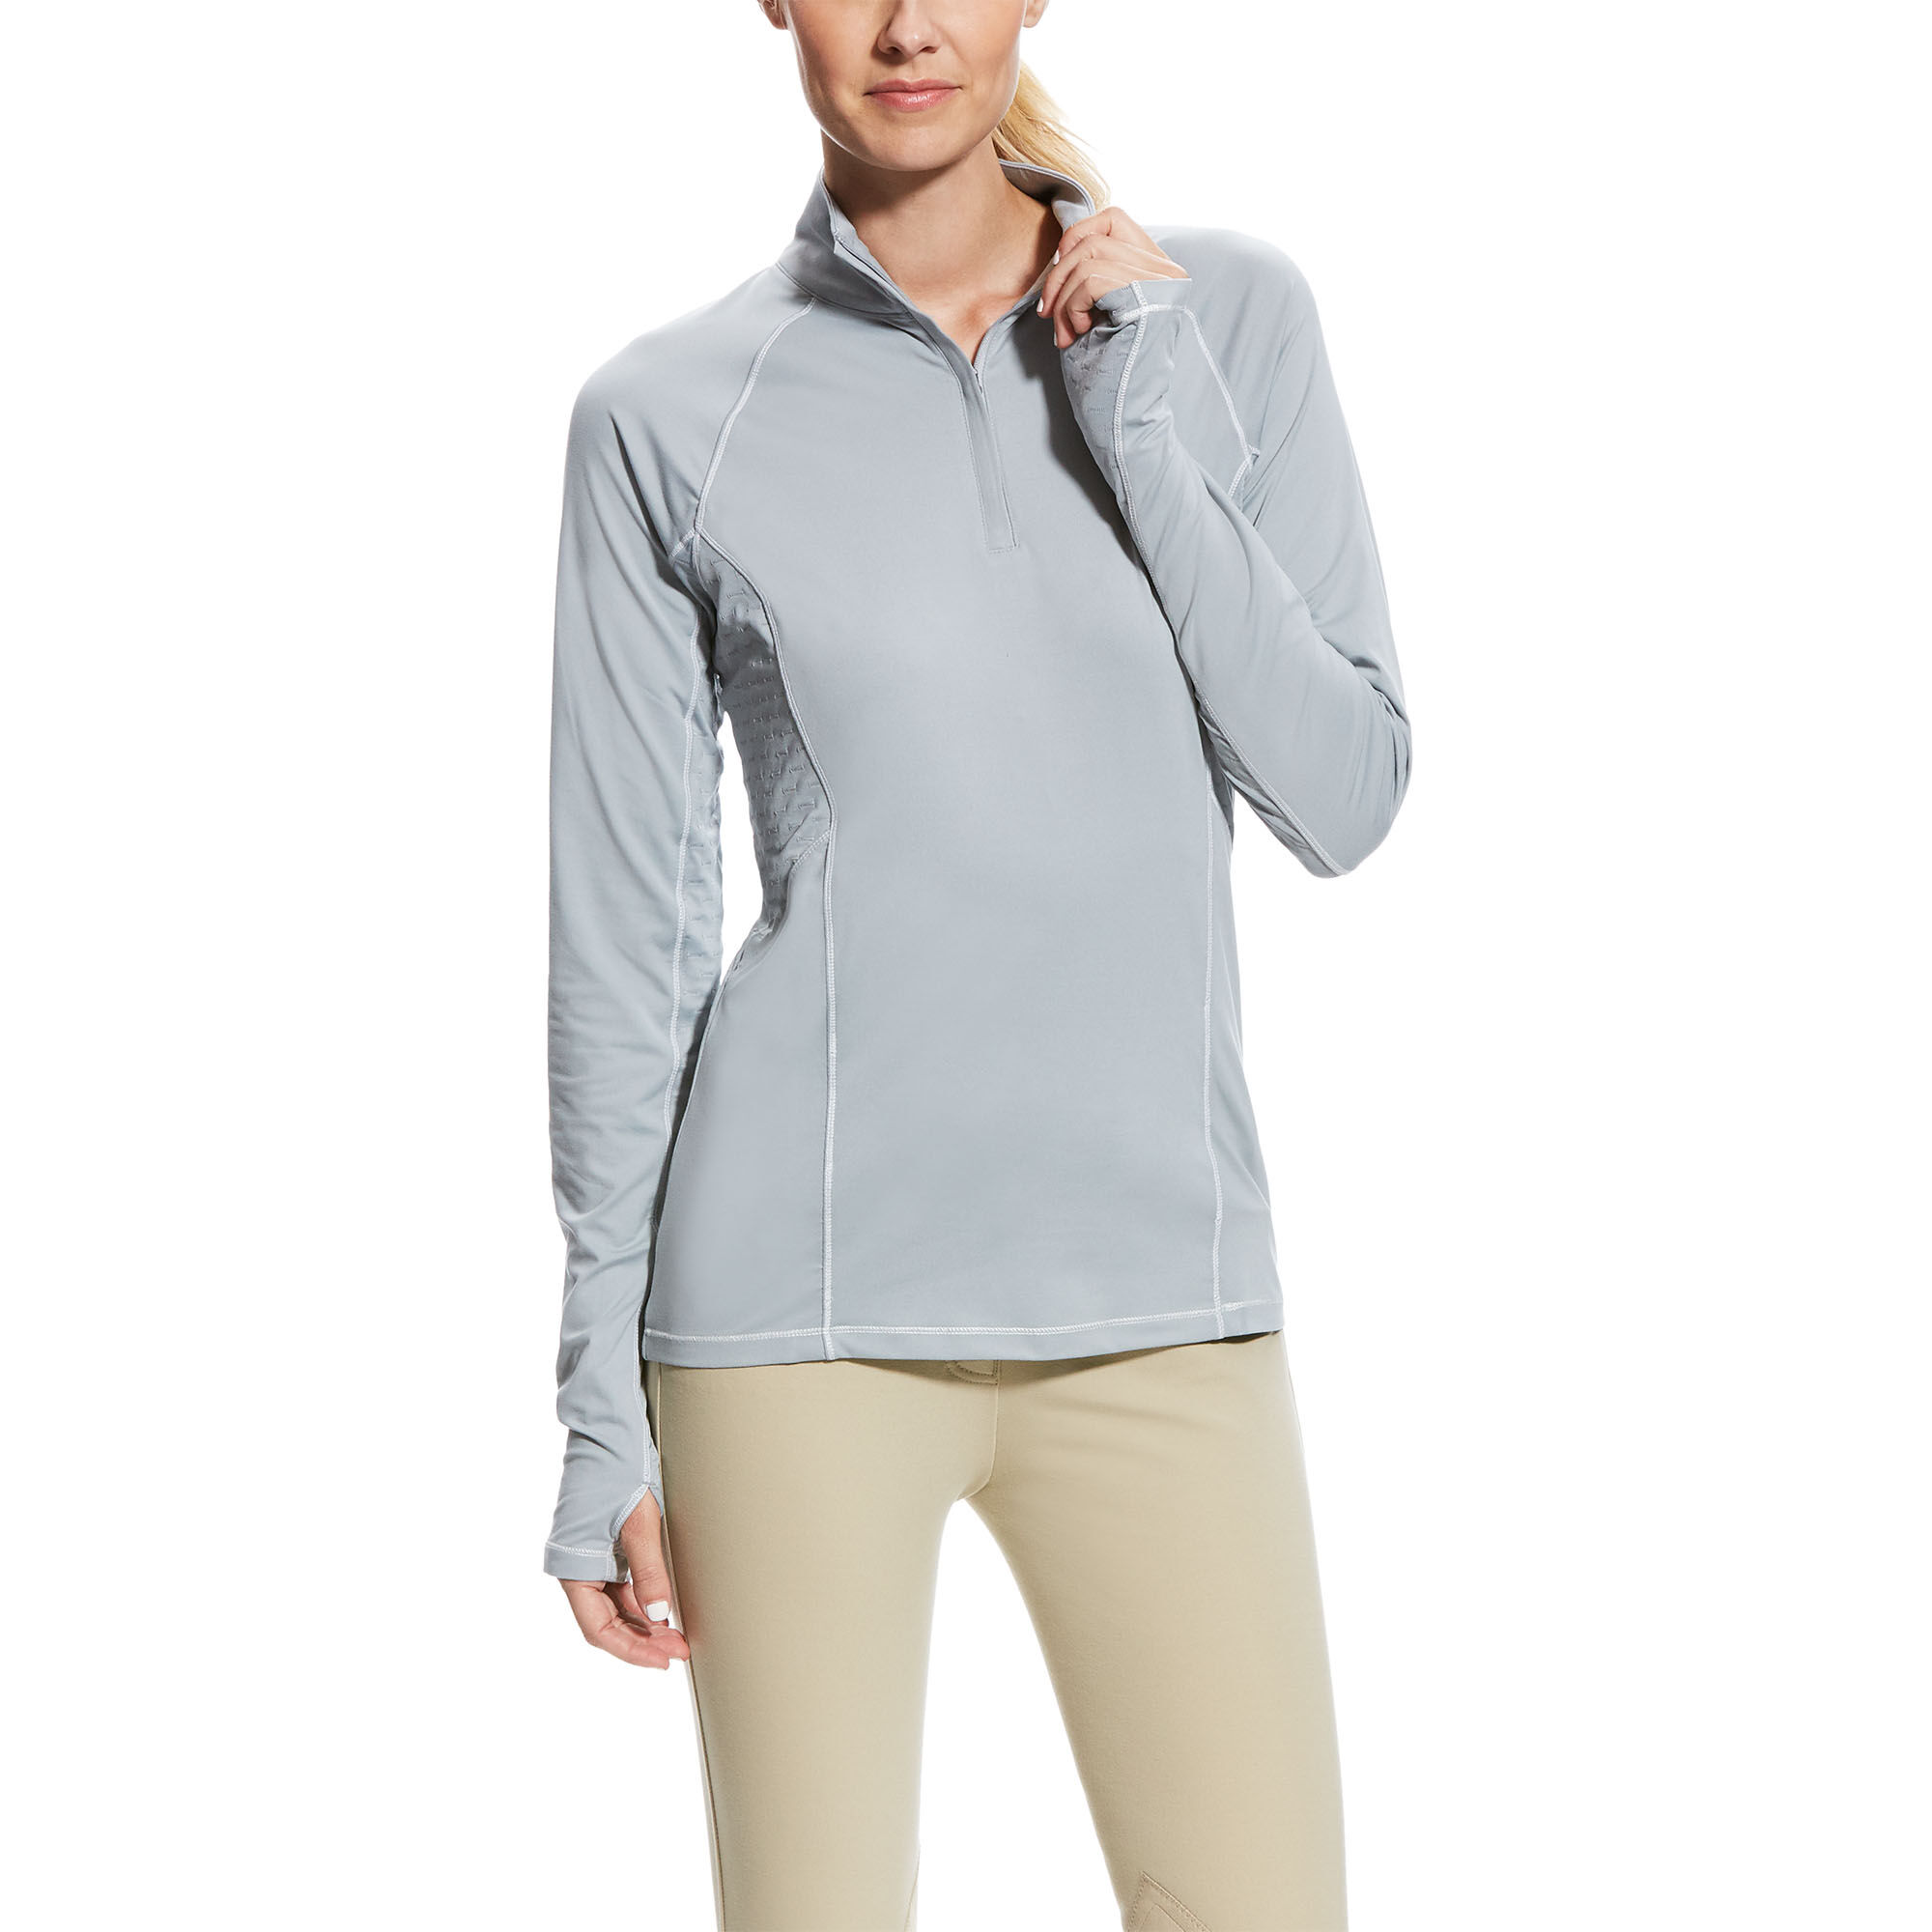 Ariat Womens Lowell 2.0 1/4 Zip Clothing & Accessories Grisblue Sporting Goods